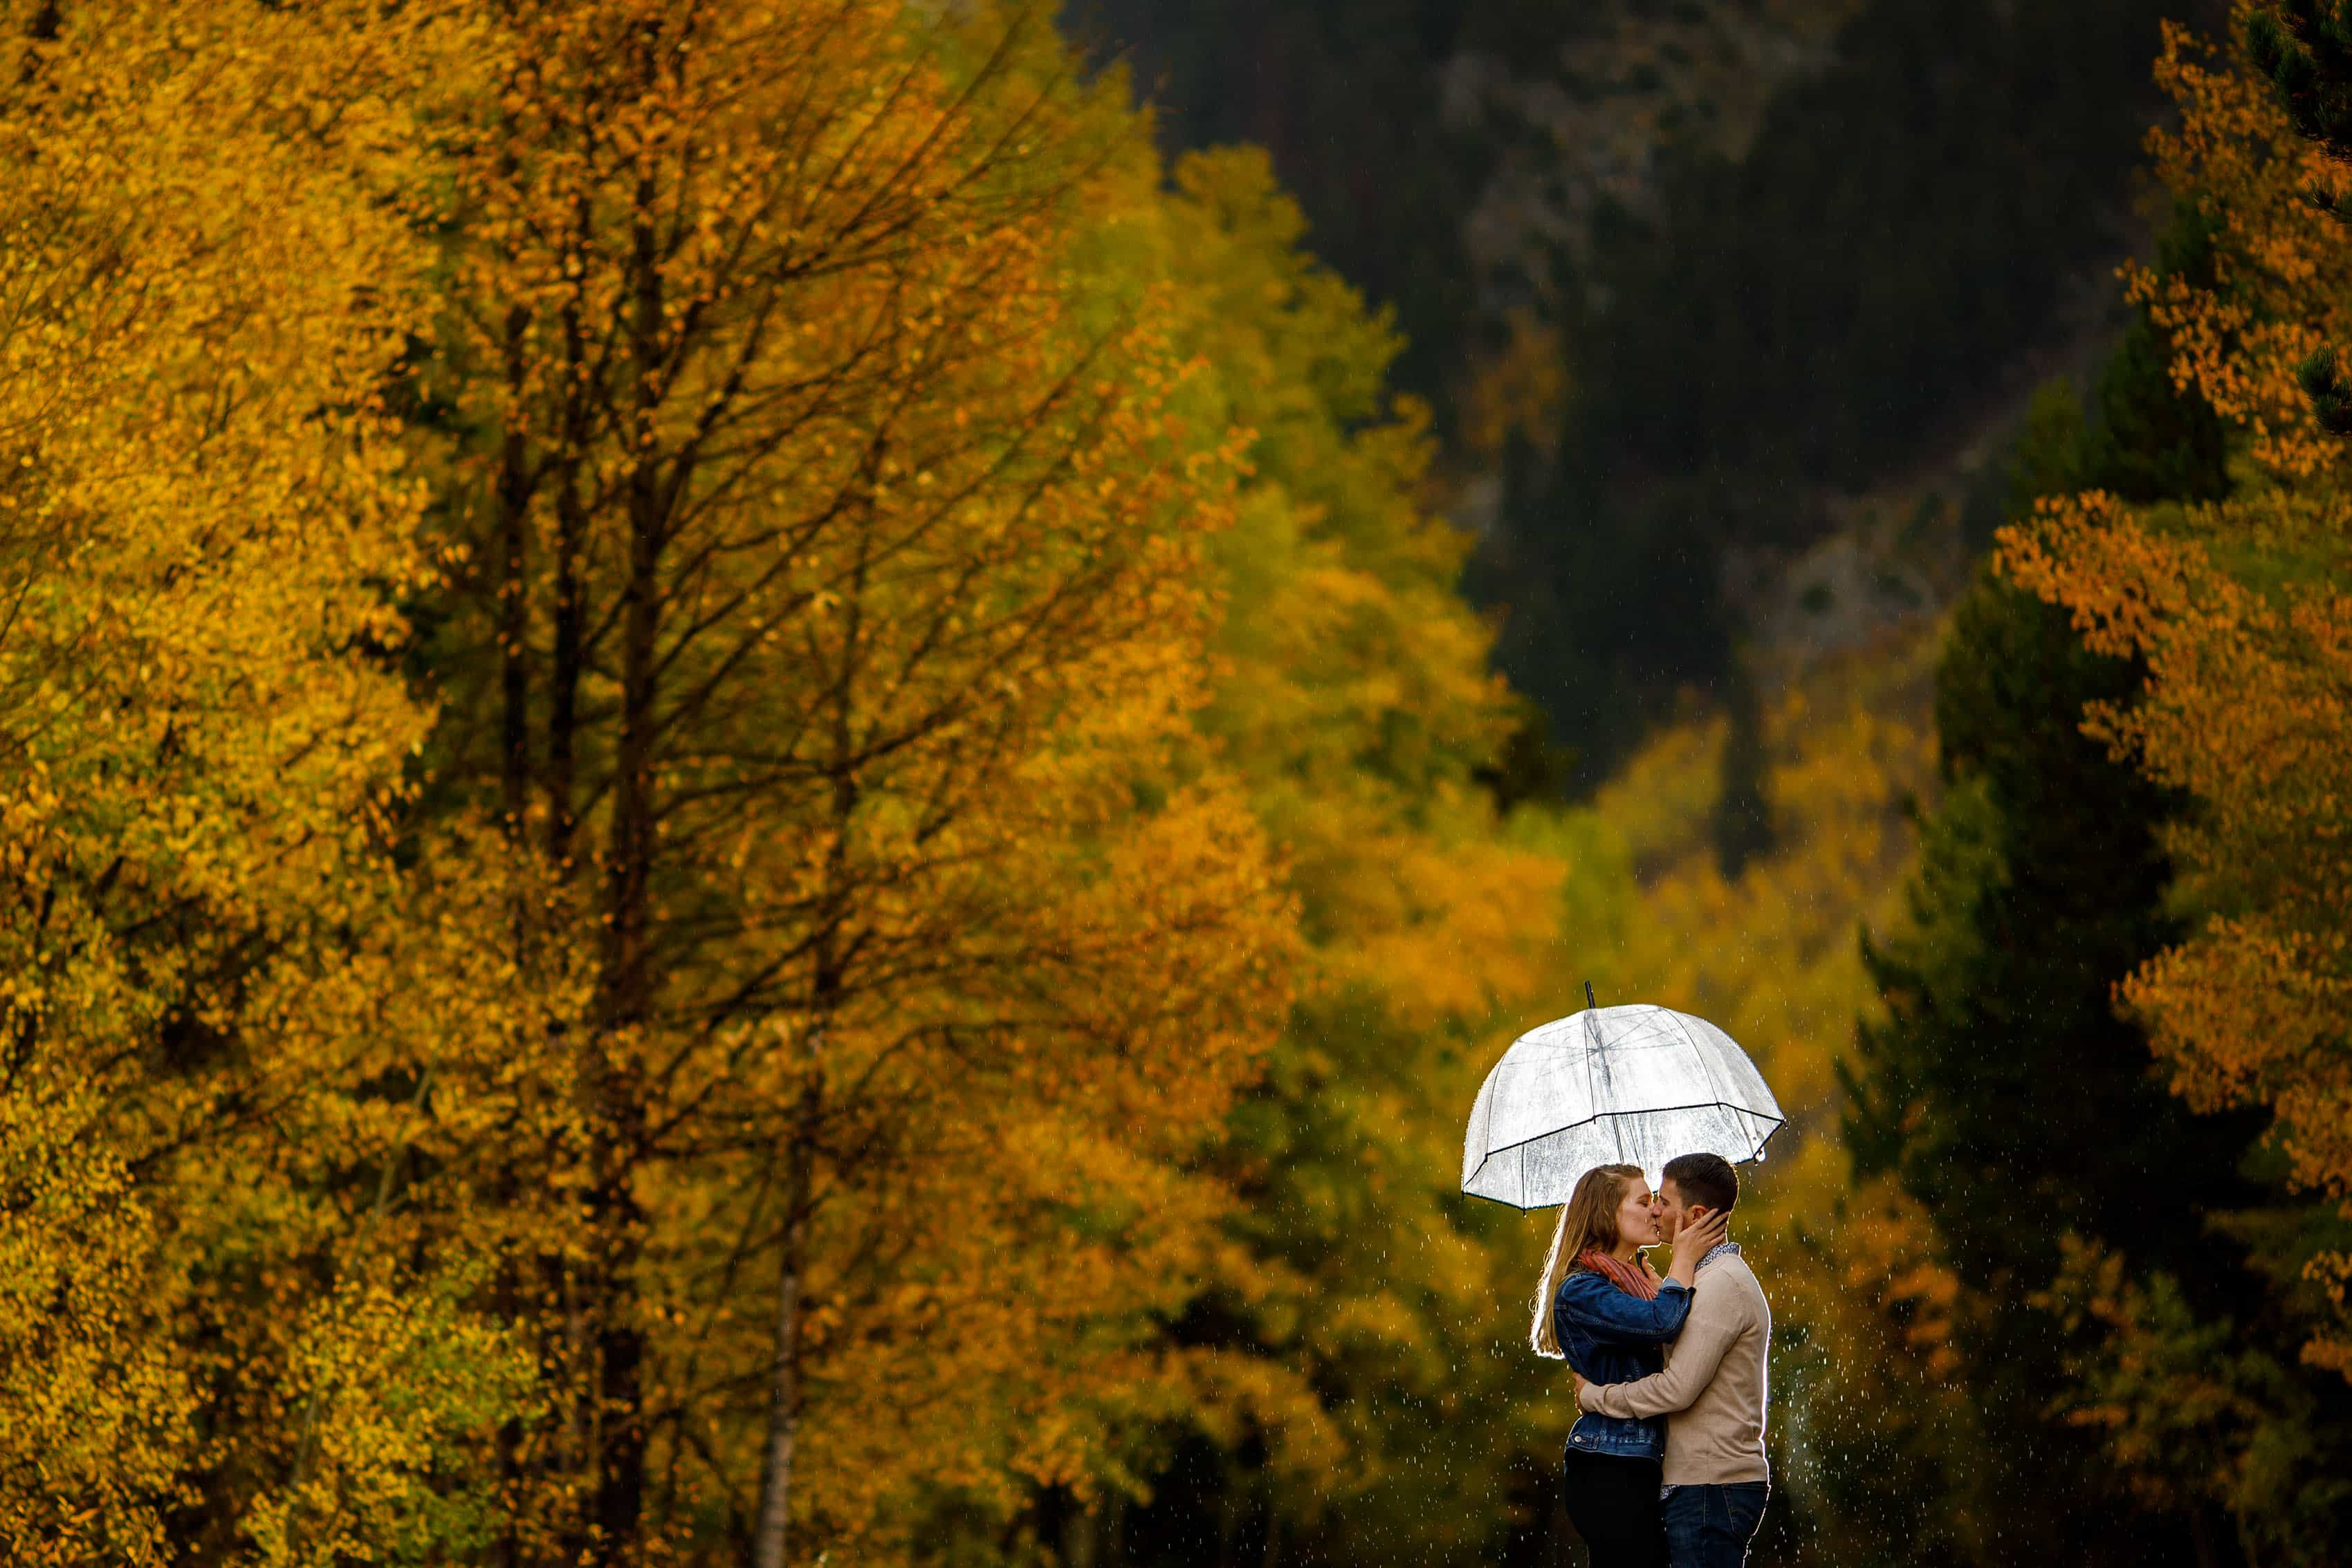 Holly and Hayden kiss under an umbrella during a fall rain shower in Frisco Colorado during their engagement session